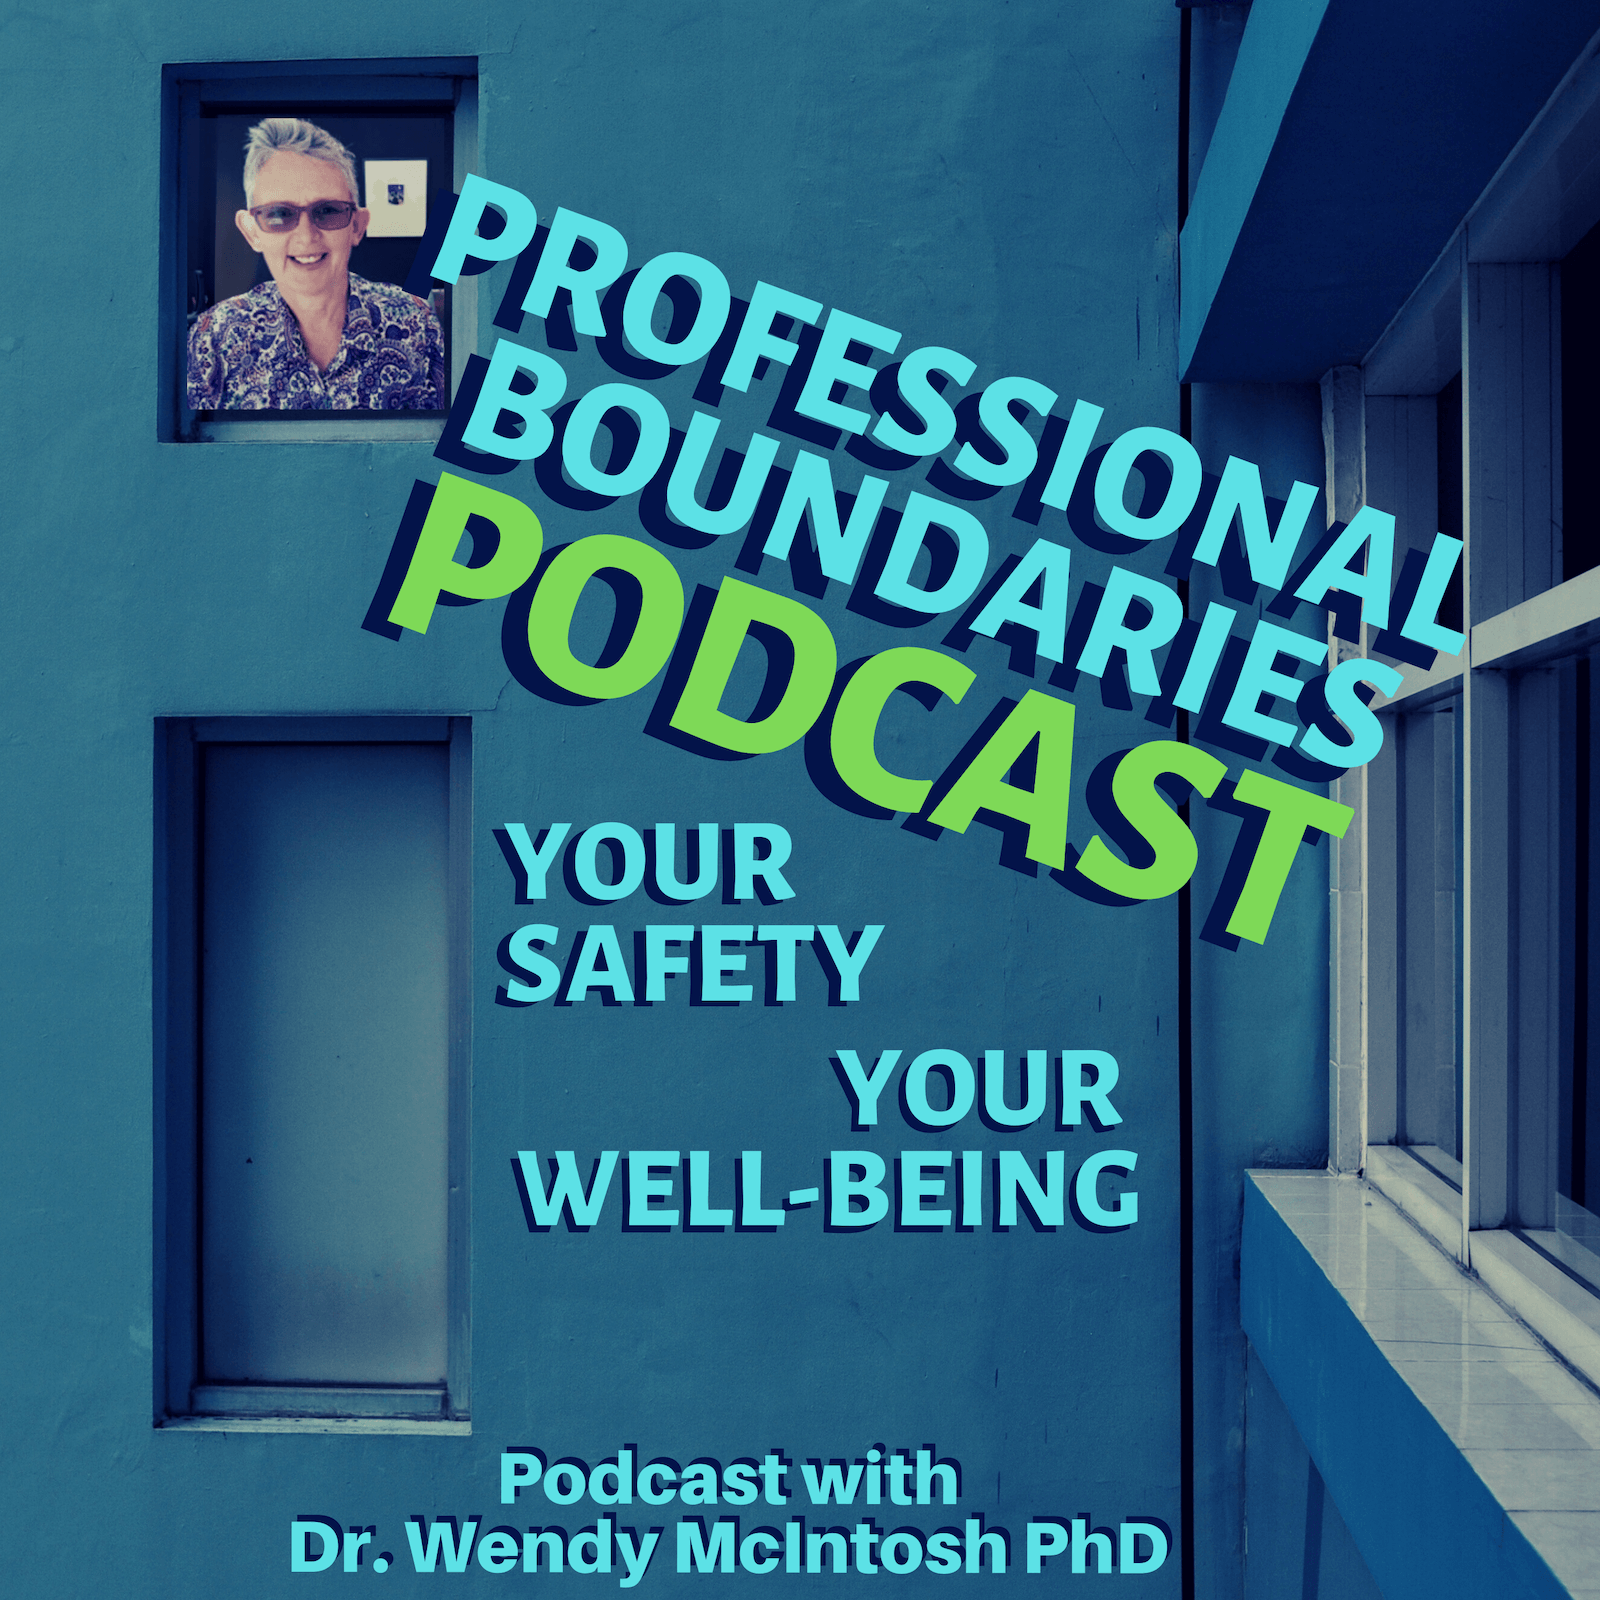 New Professional Boundaries Podcast